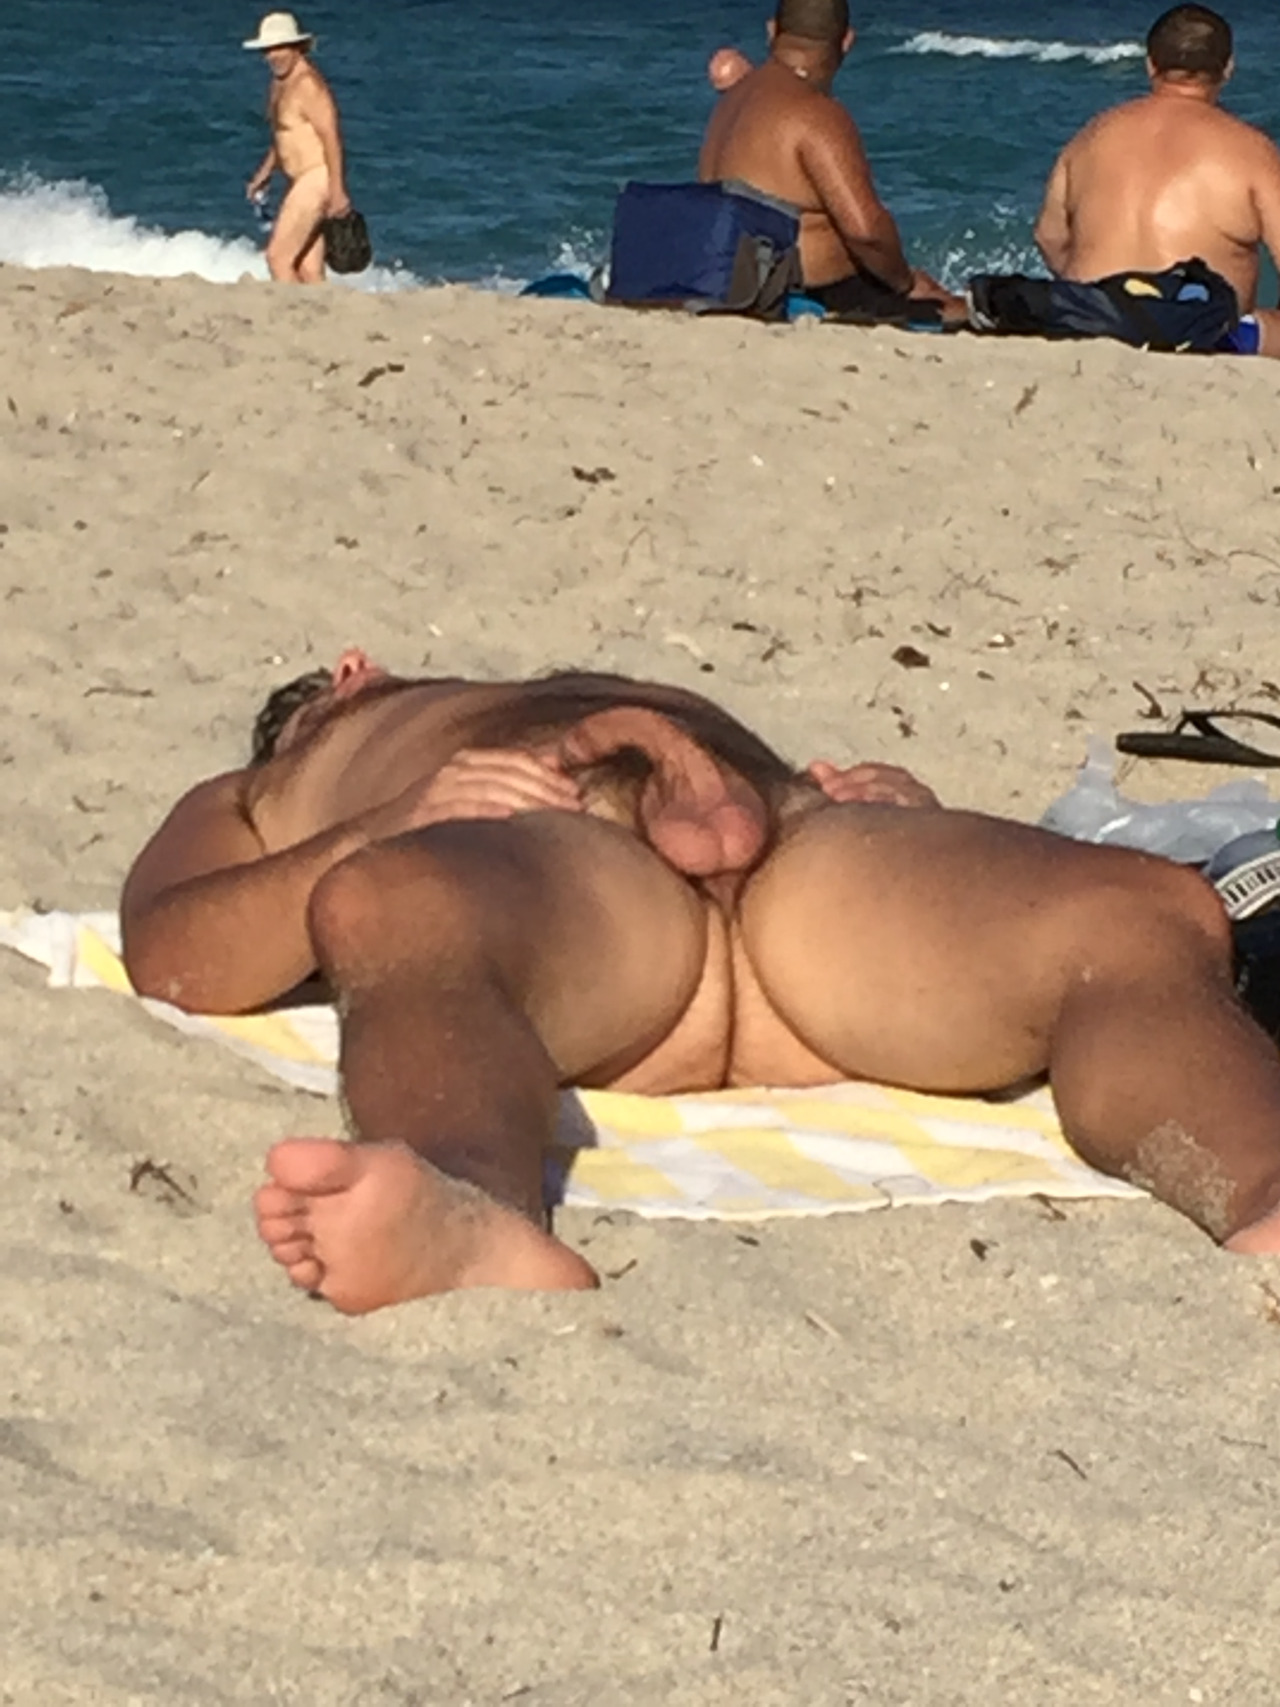 pictures of nude men beach erections